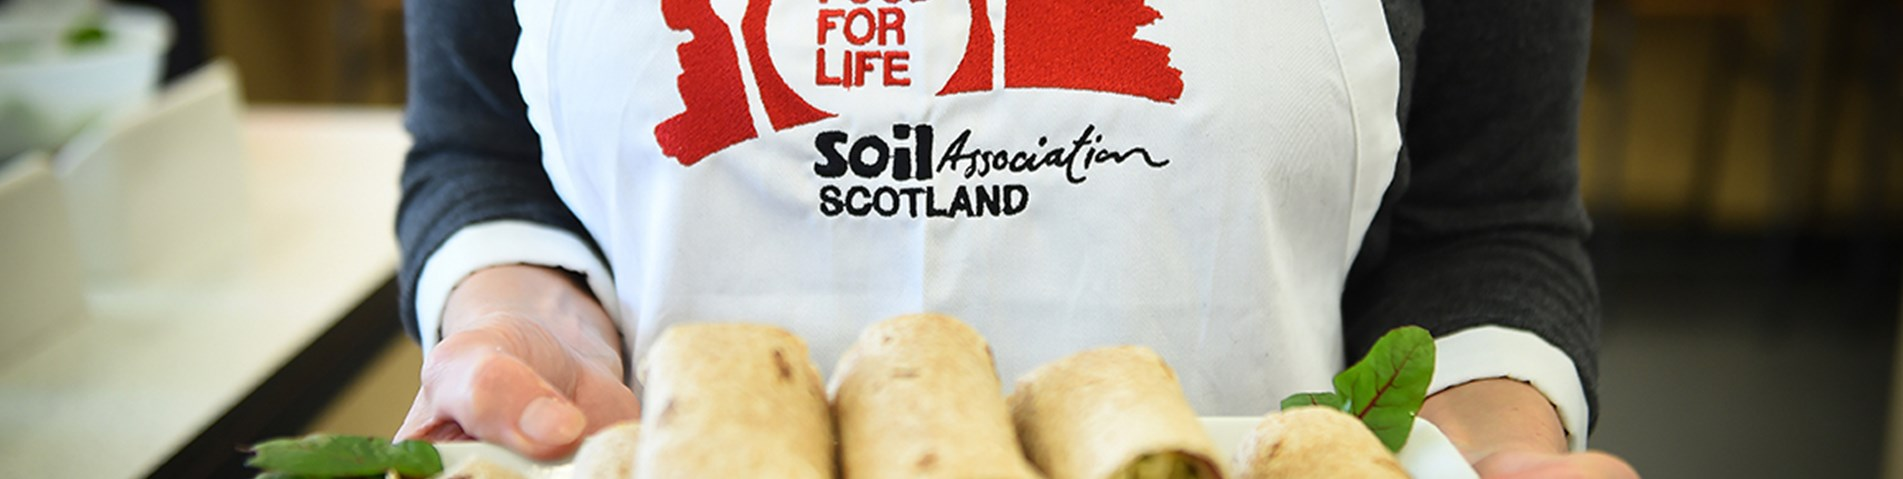 Food For Life Scotland general.jpg